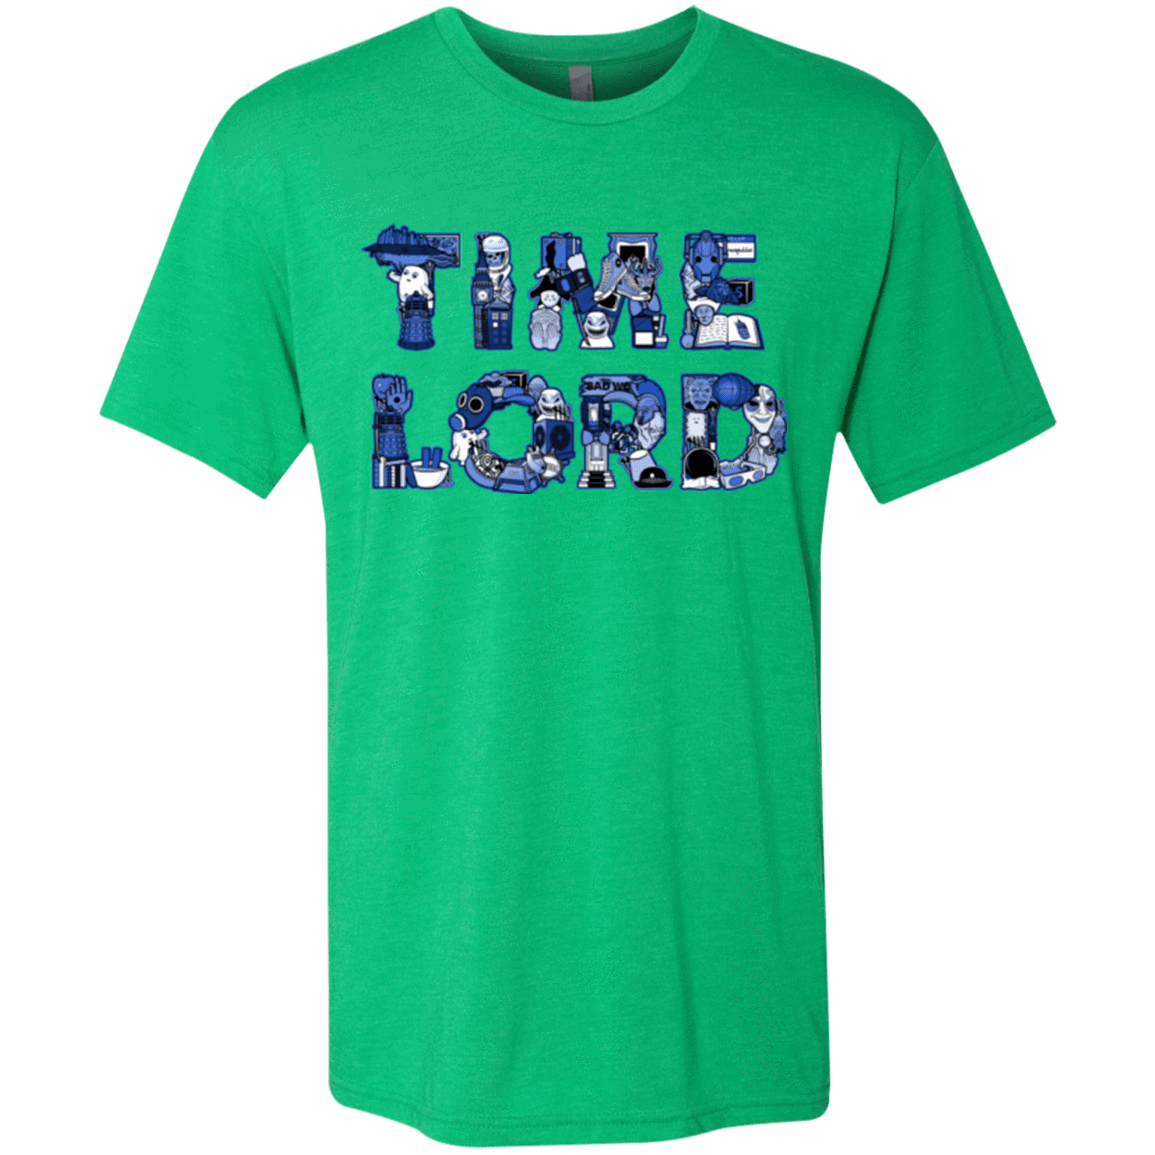 T-Shirts Envy / Small Timelord Men's Triblend T-Shirt